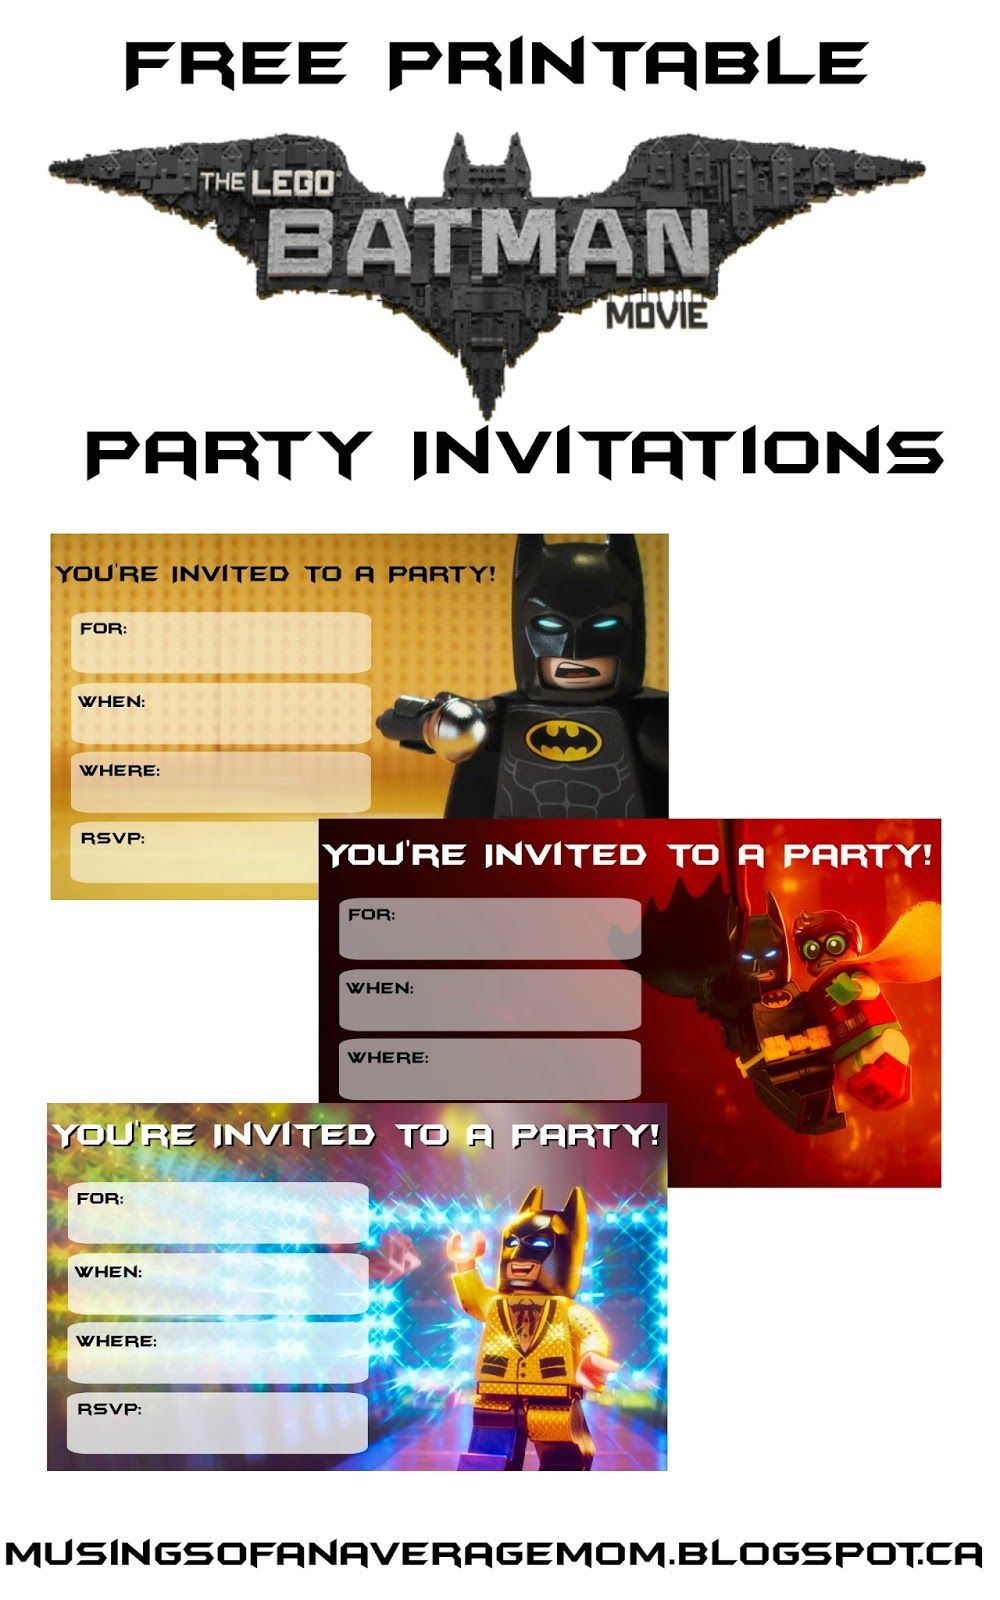 Everything You Need For A Lego Batman Party | Party Ideas | Lego - Lego Batman Party Invitations Free Printable